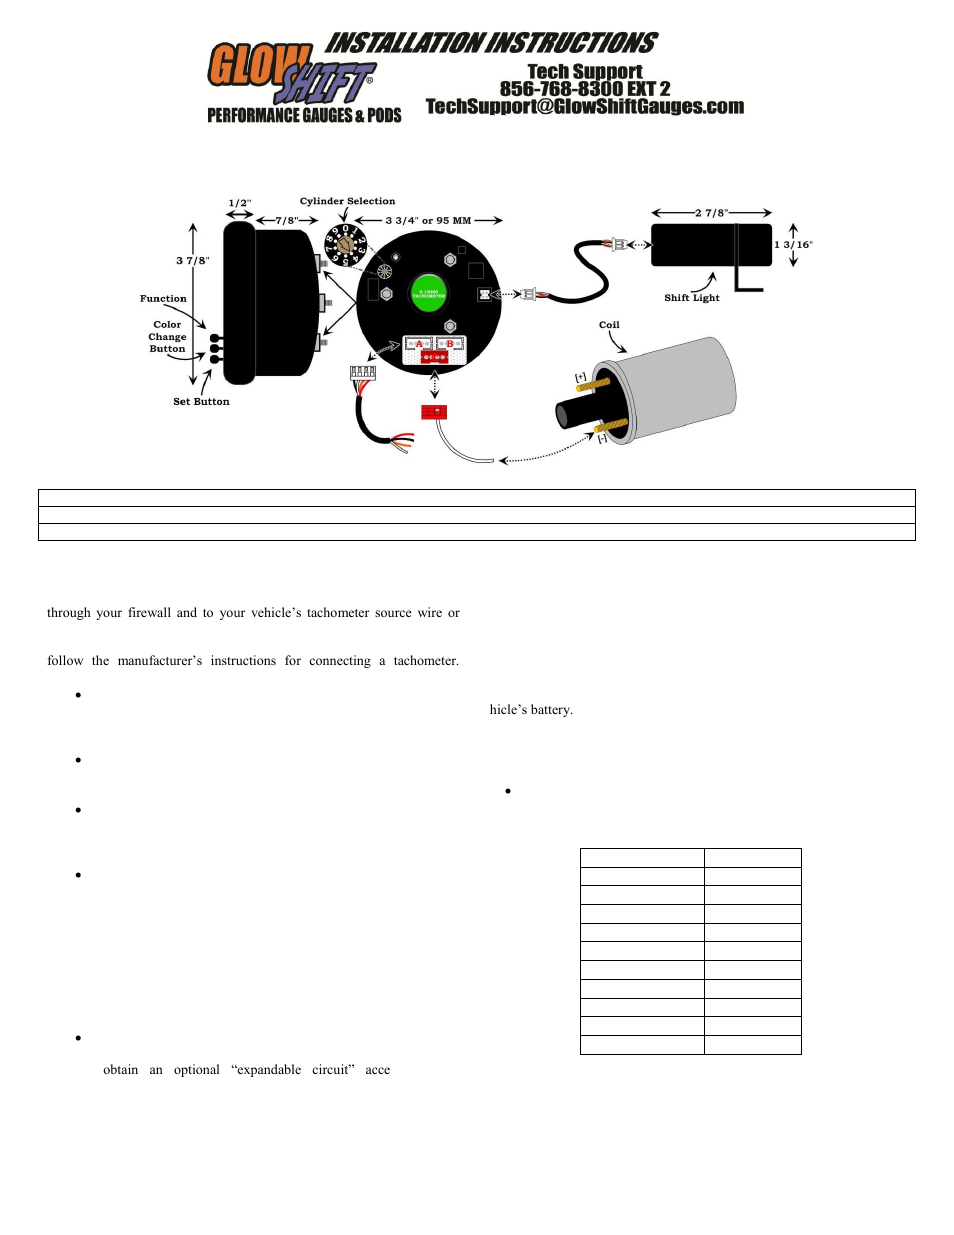 Glowshift Elite 10 Color Series 334 Inch In Dash Tachometer Gauge How To Connect A User Manual 3 Pages Also For 4th